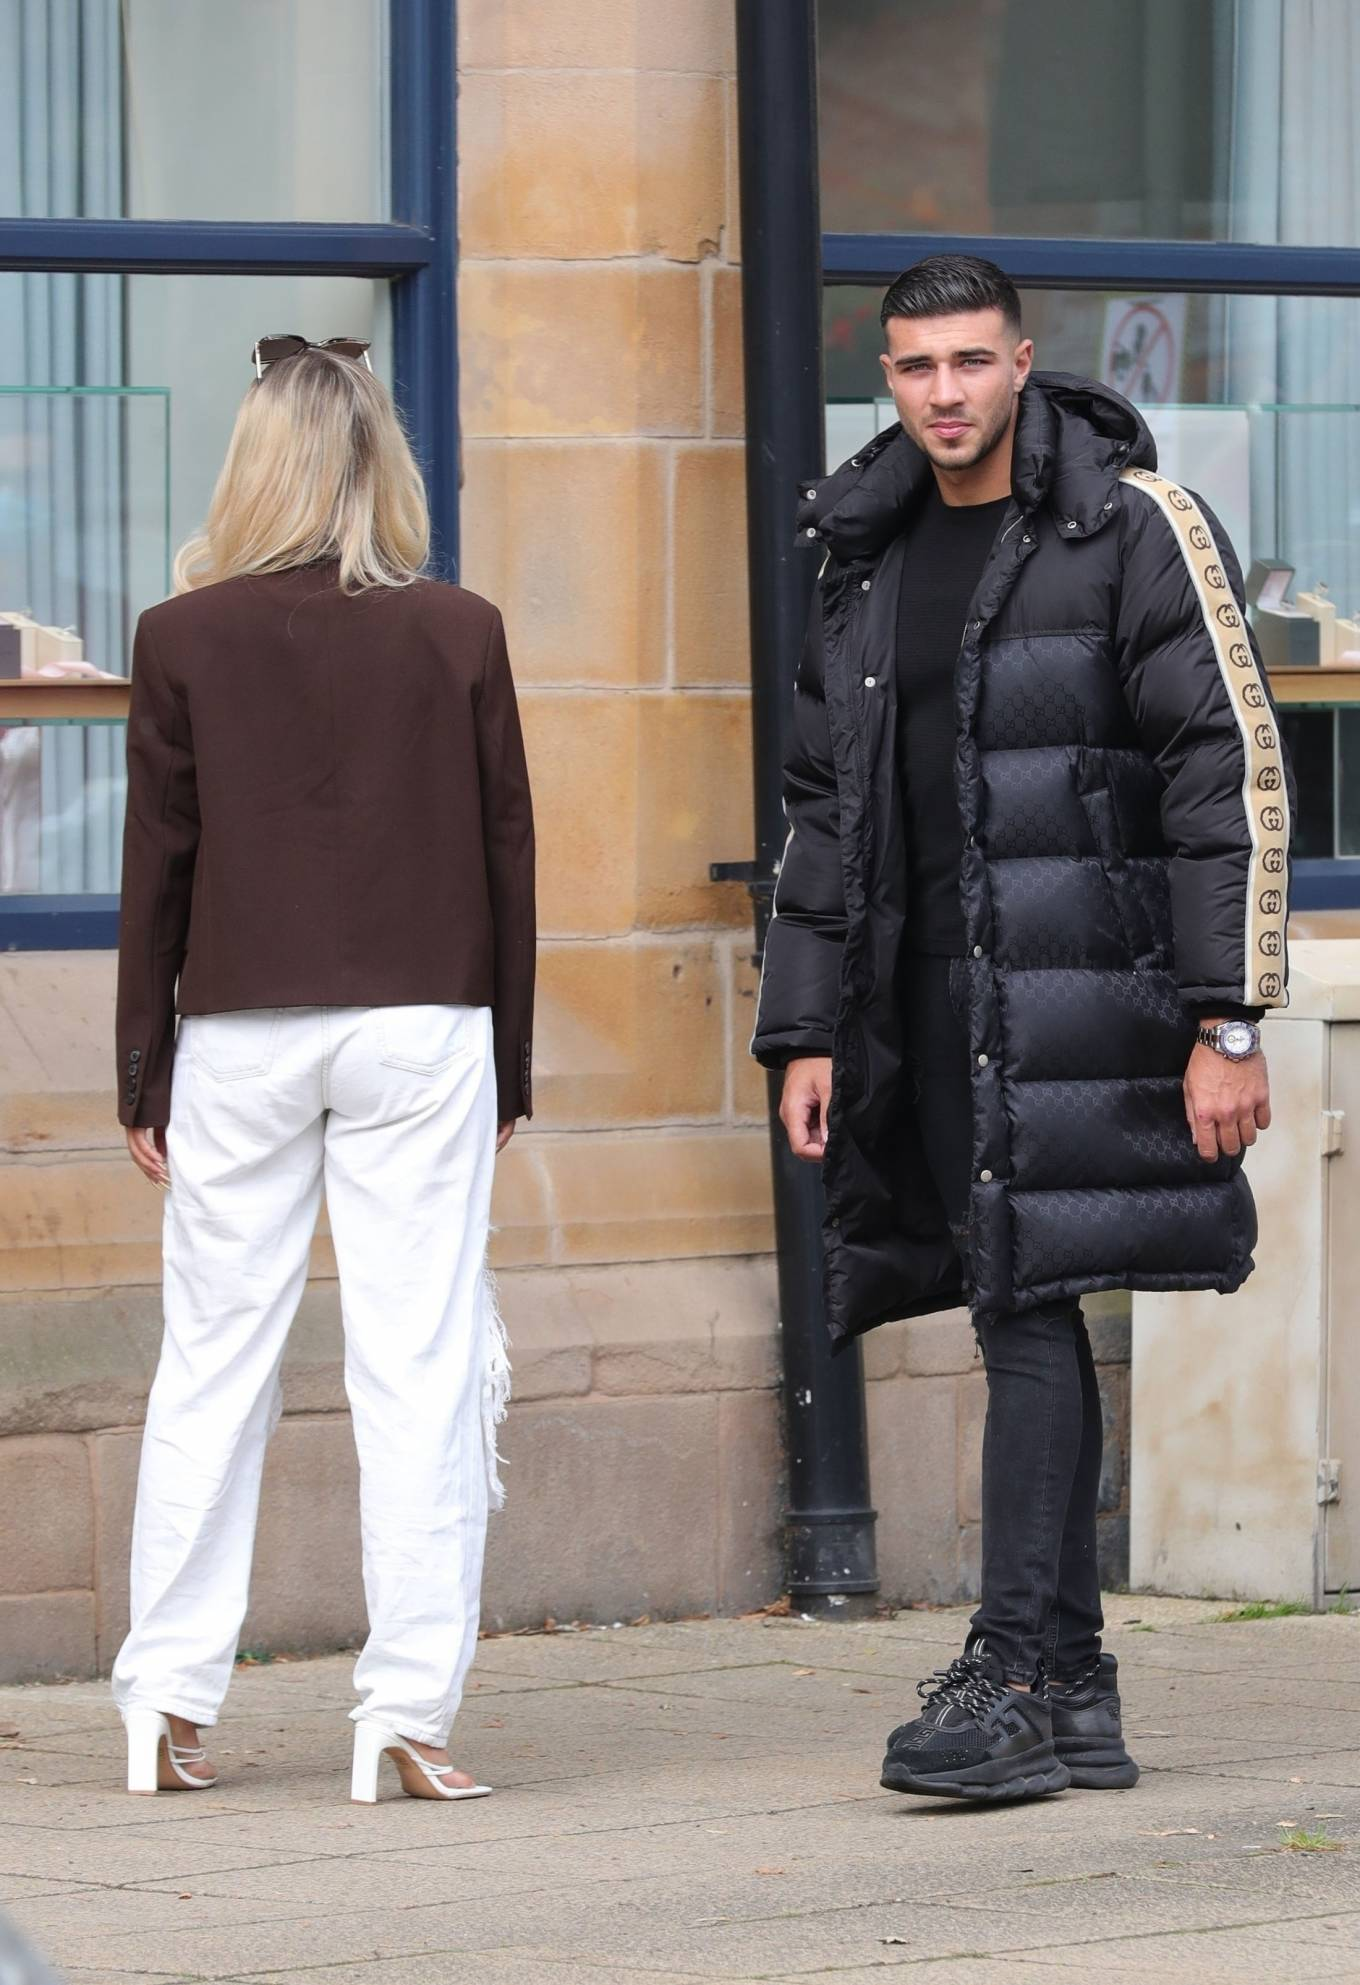 Molly-Mae Hague 2020 : Molly-Mae Hague and Tommy Fury – Seen while out in Cheshire -09